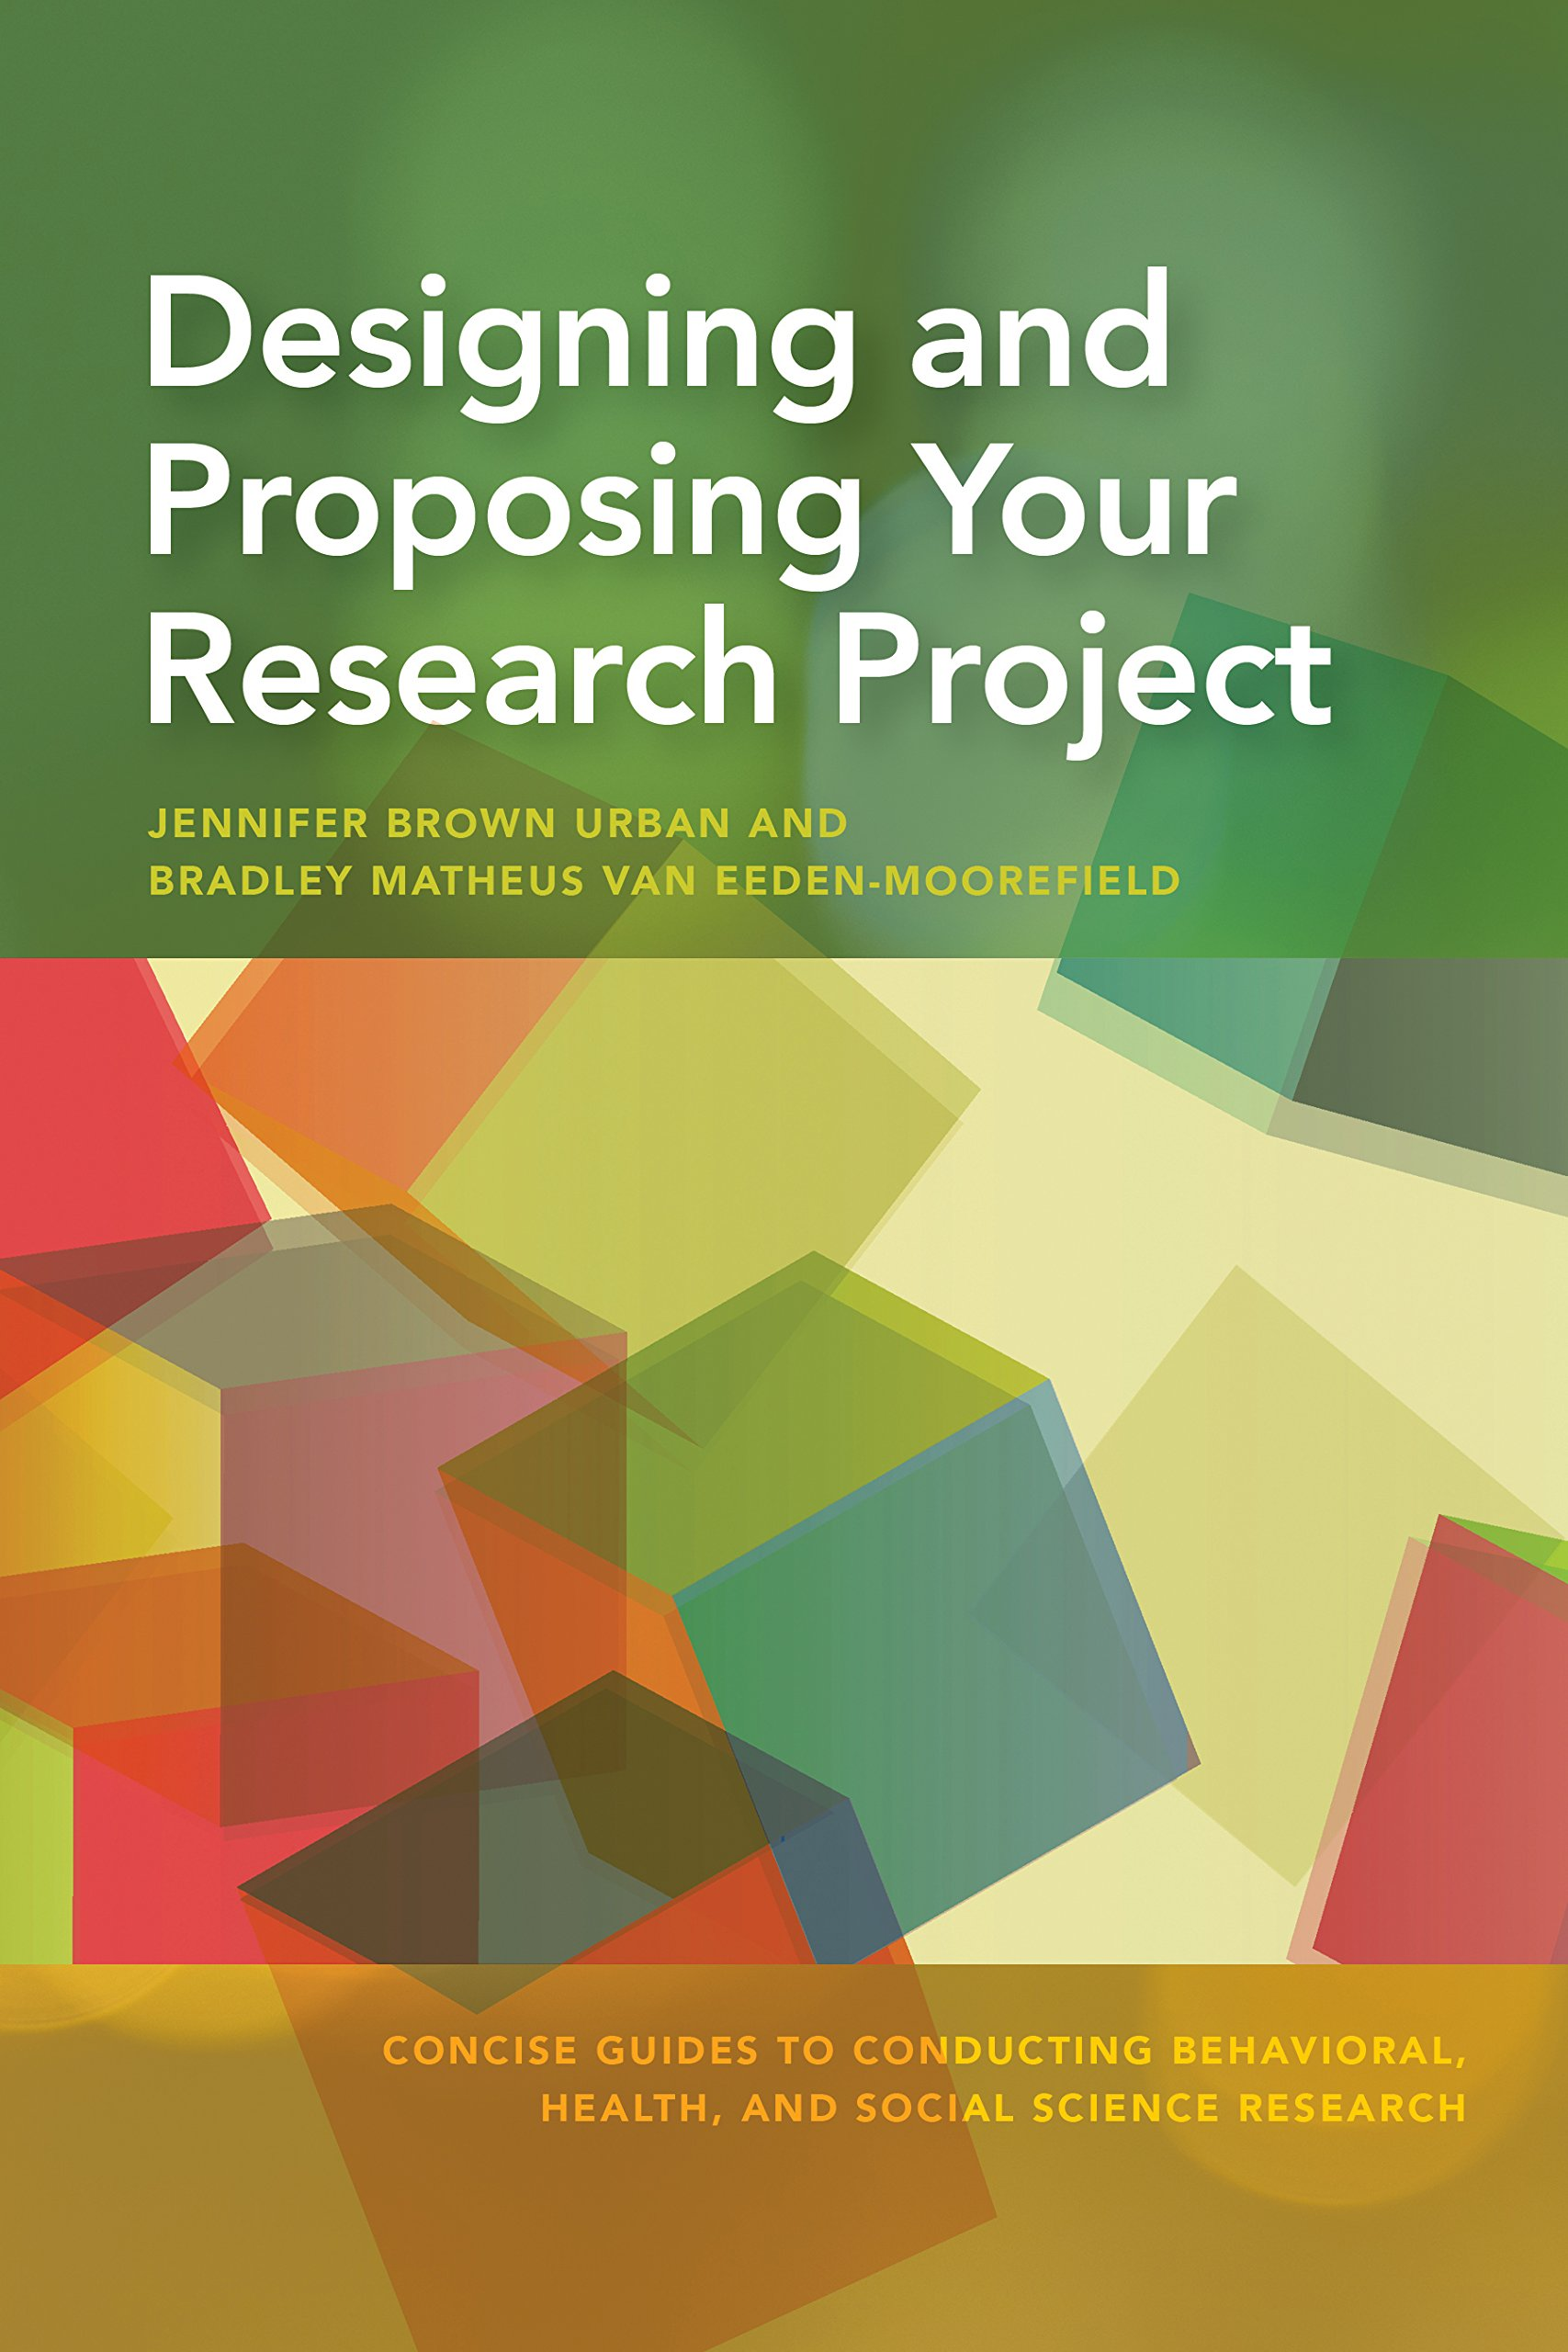 Designing And Proposing Your Research Project Concise Guides To Conducting Behavioral Health And Social Science Research Urban Phd Jennifer Brown Van Eeden Moorefield Bradley Matheus 9781433827082 Amazon Com Books